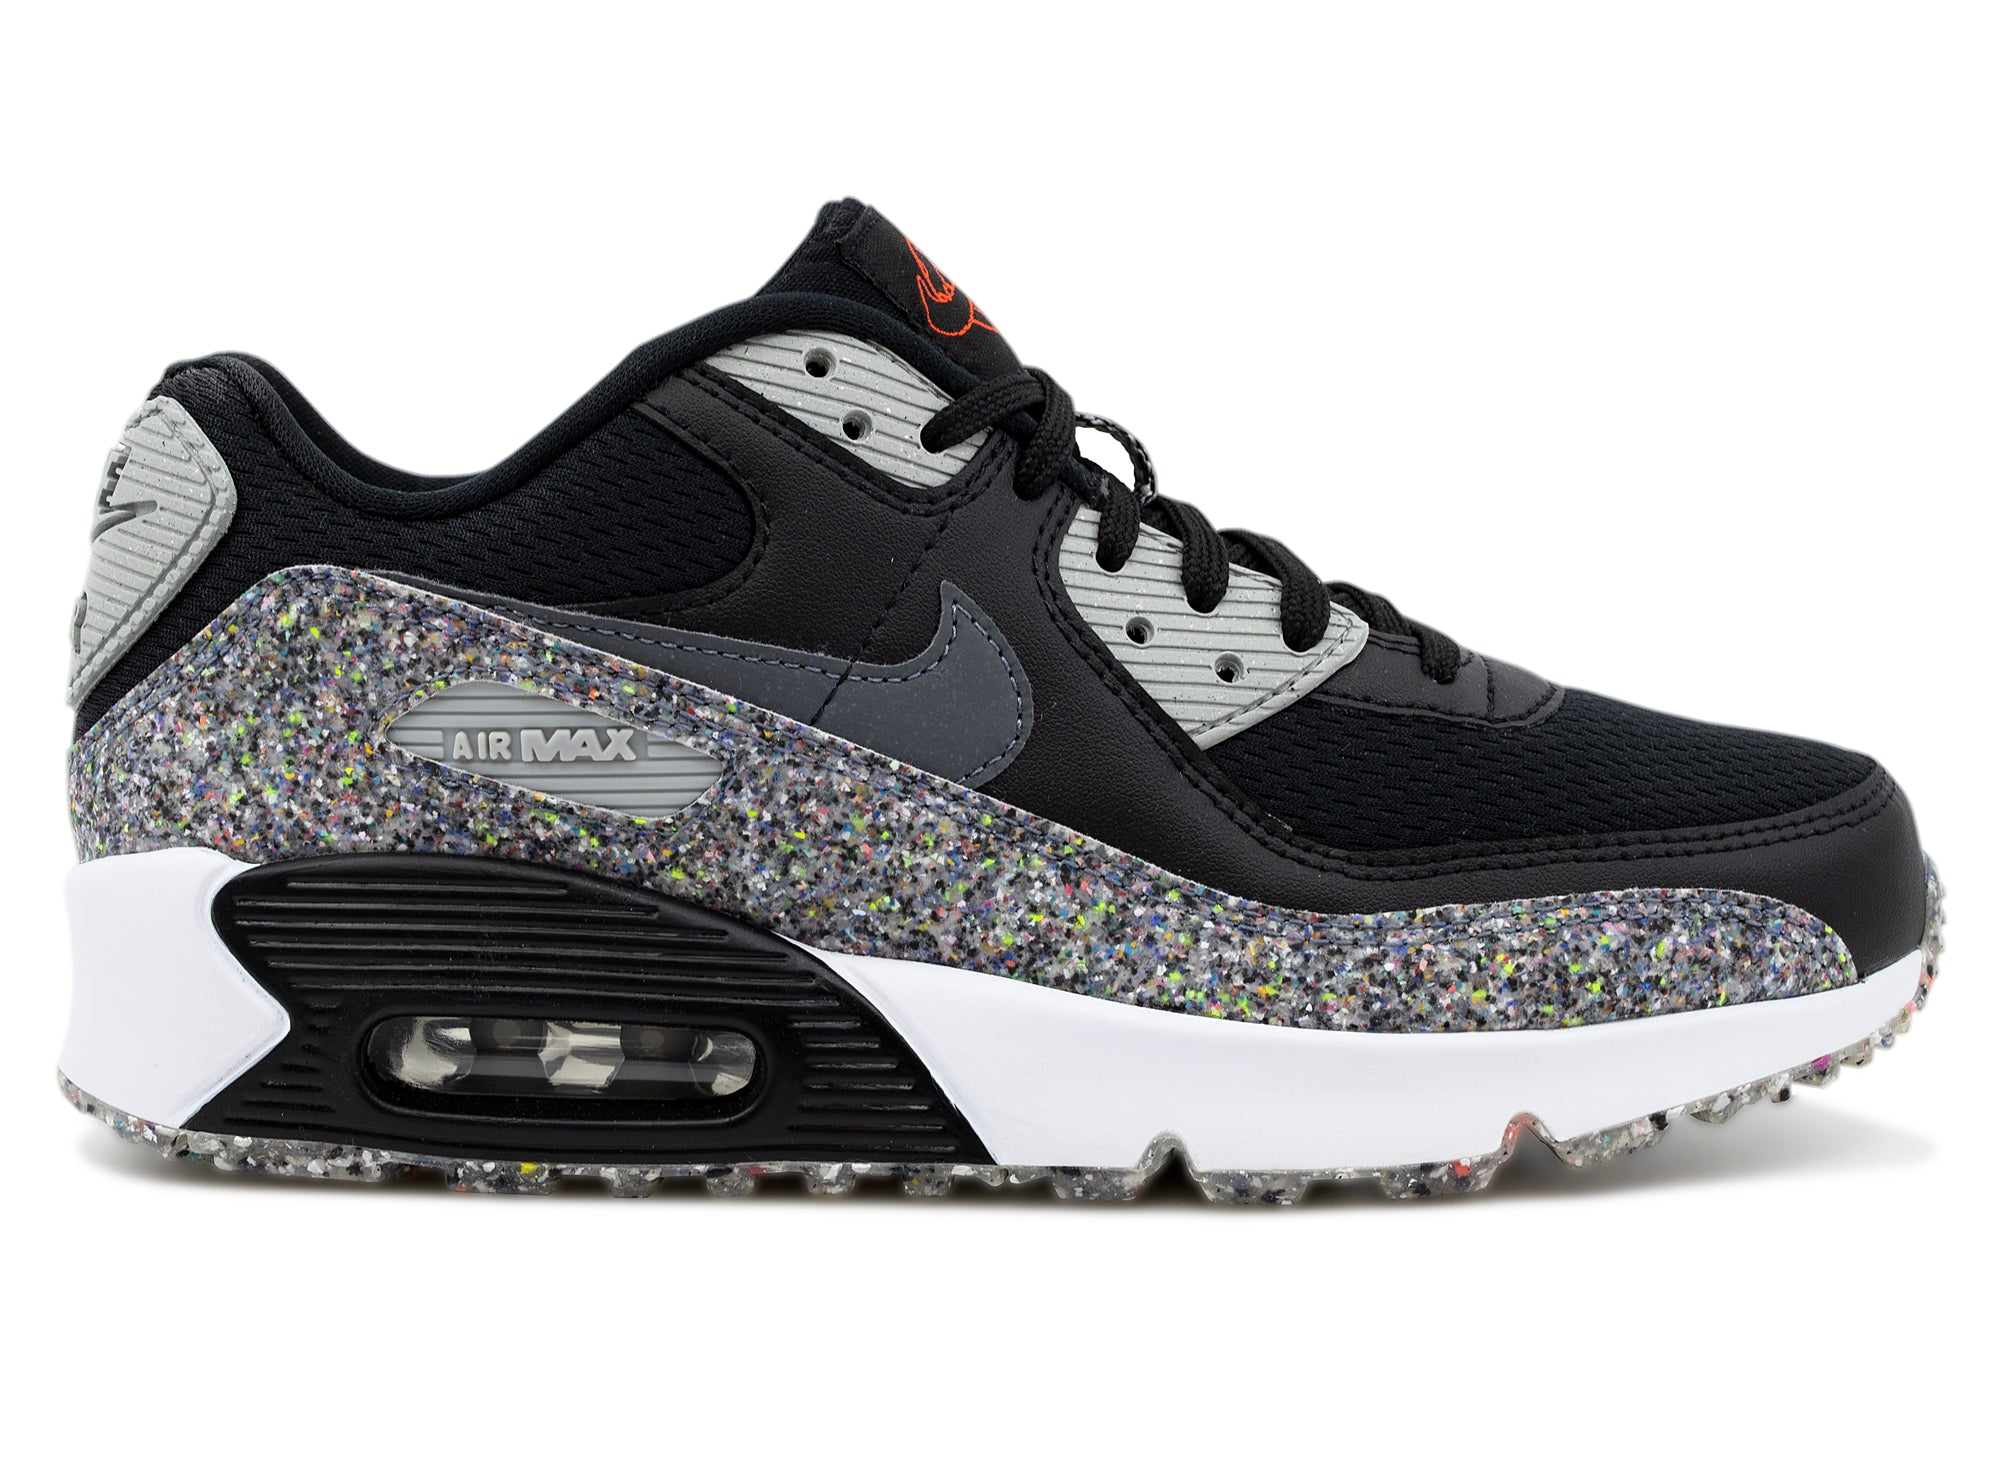 GS Nike Air Max 90 SE 'Leather' xld